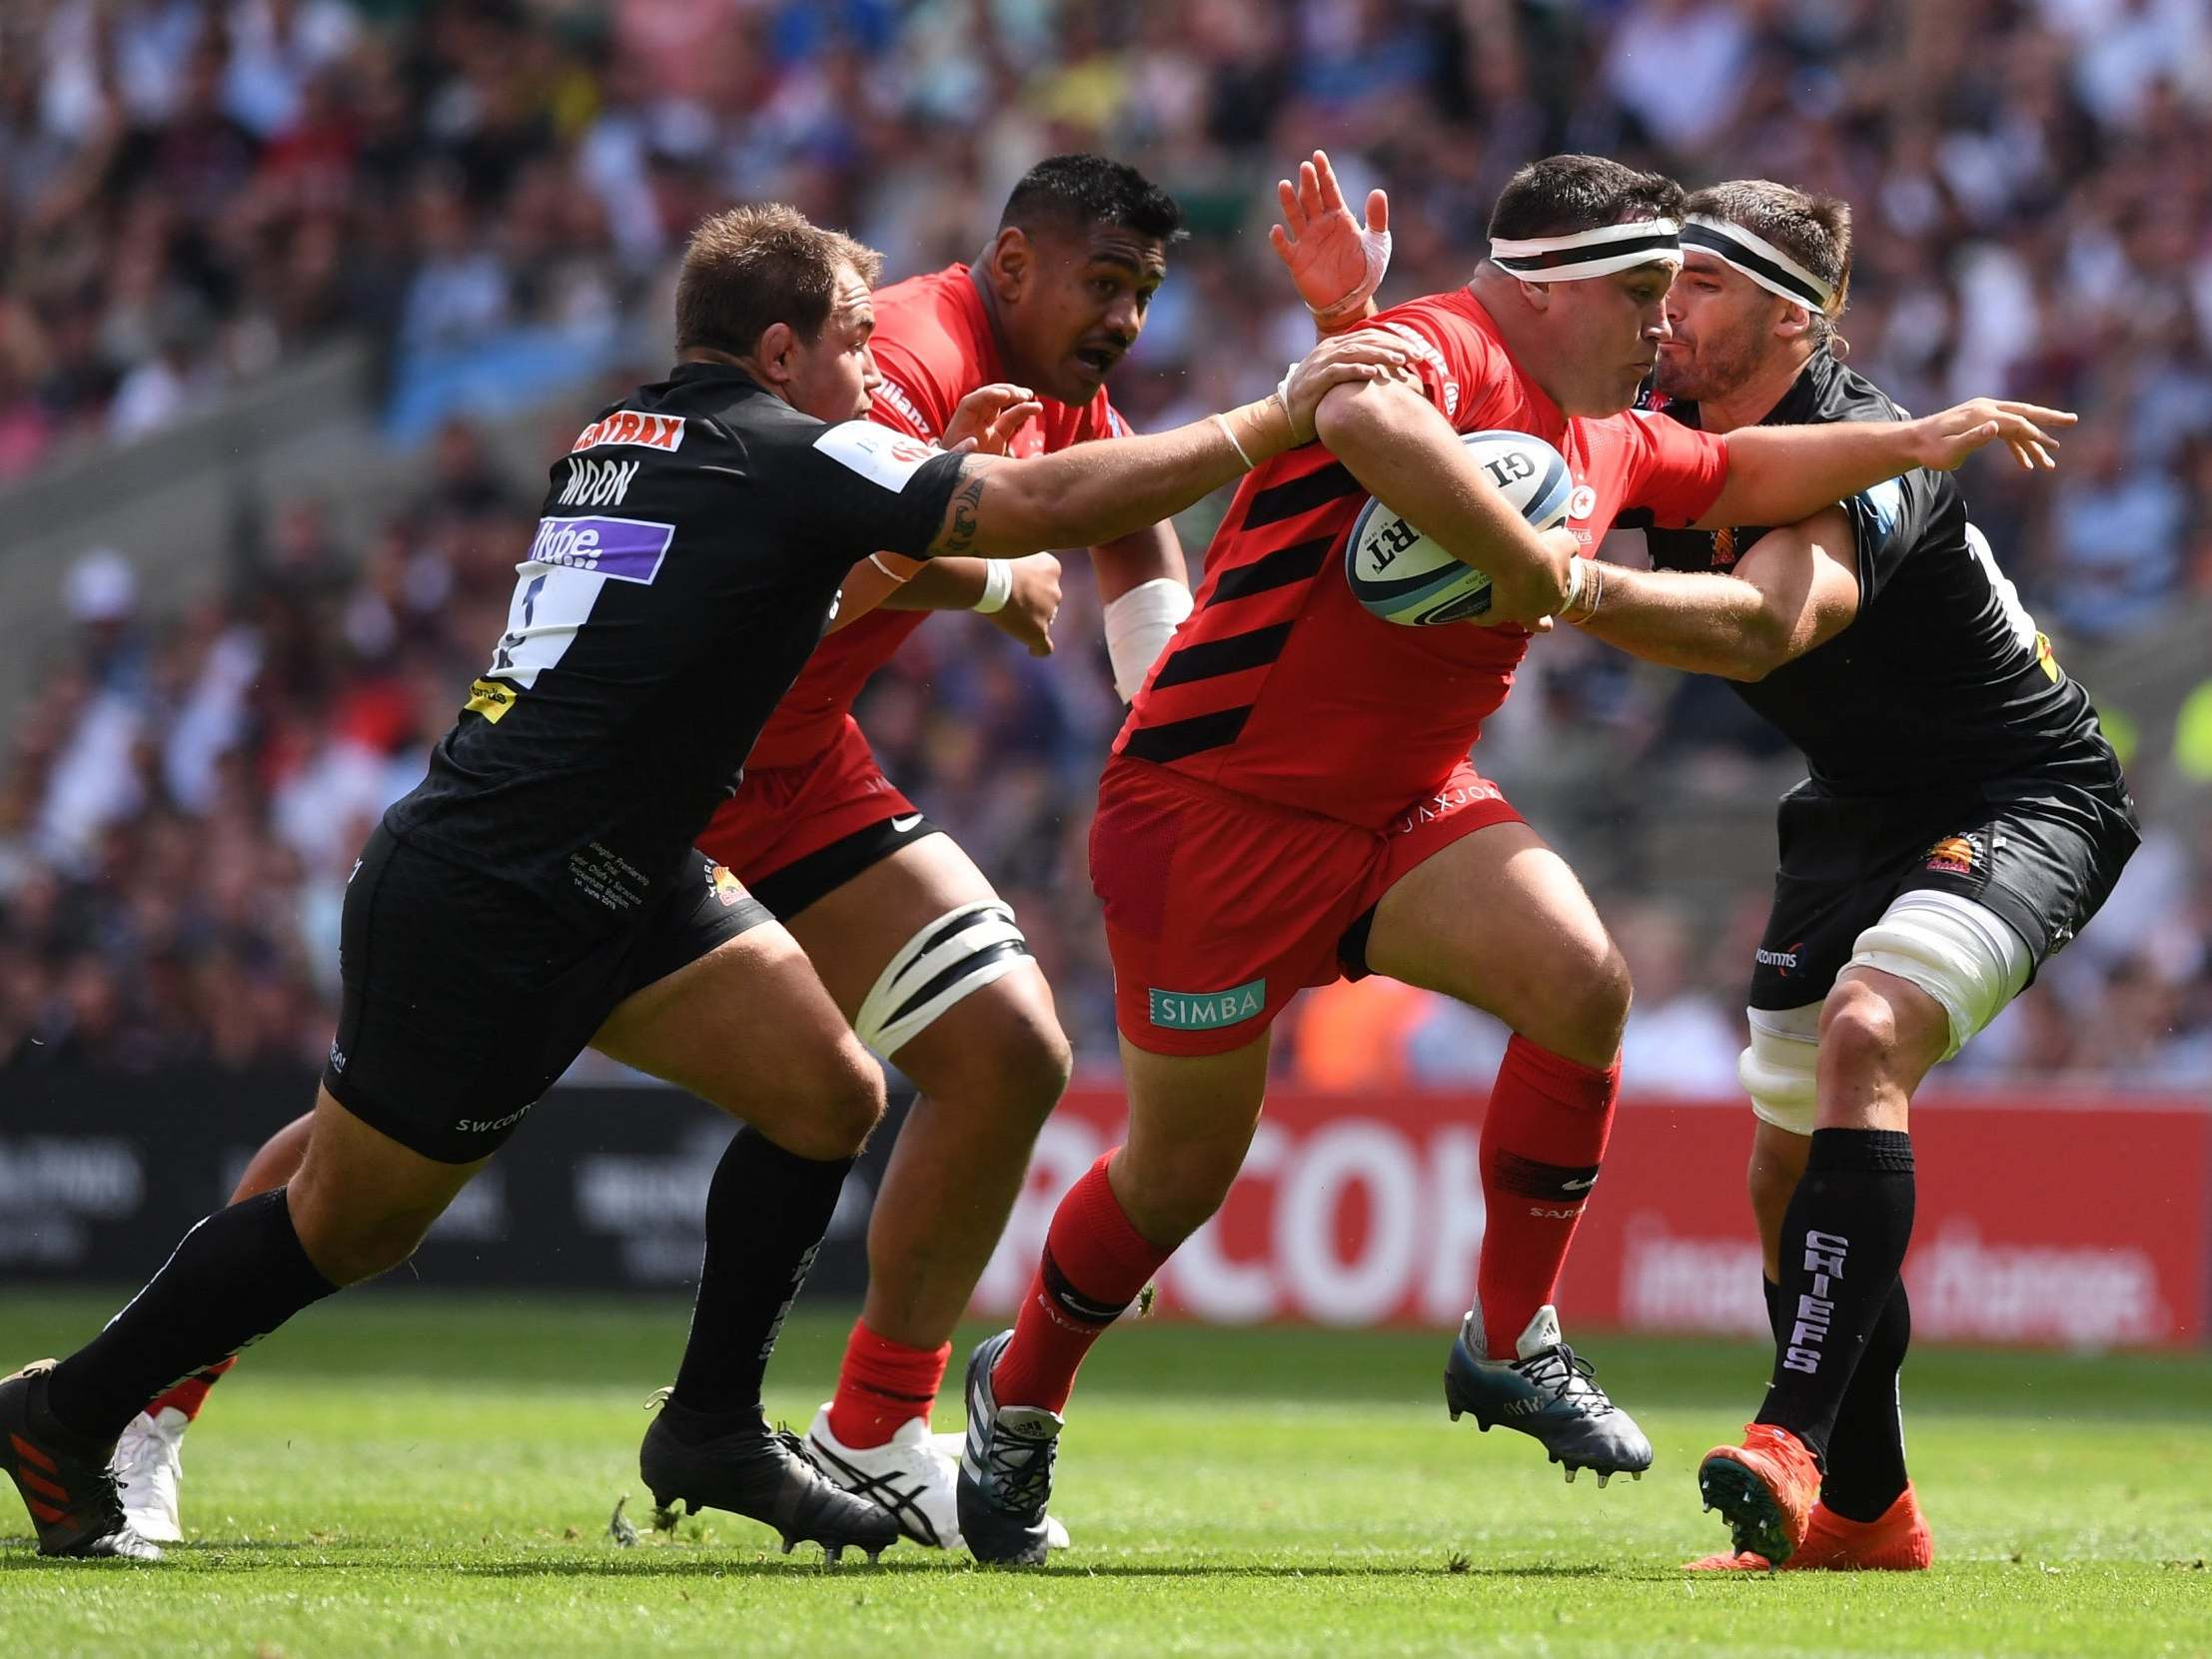 Twickenham - latest news, breaking stories and comment - The